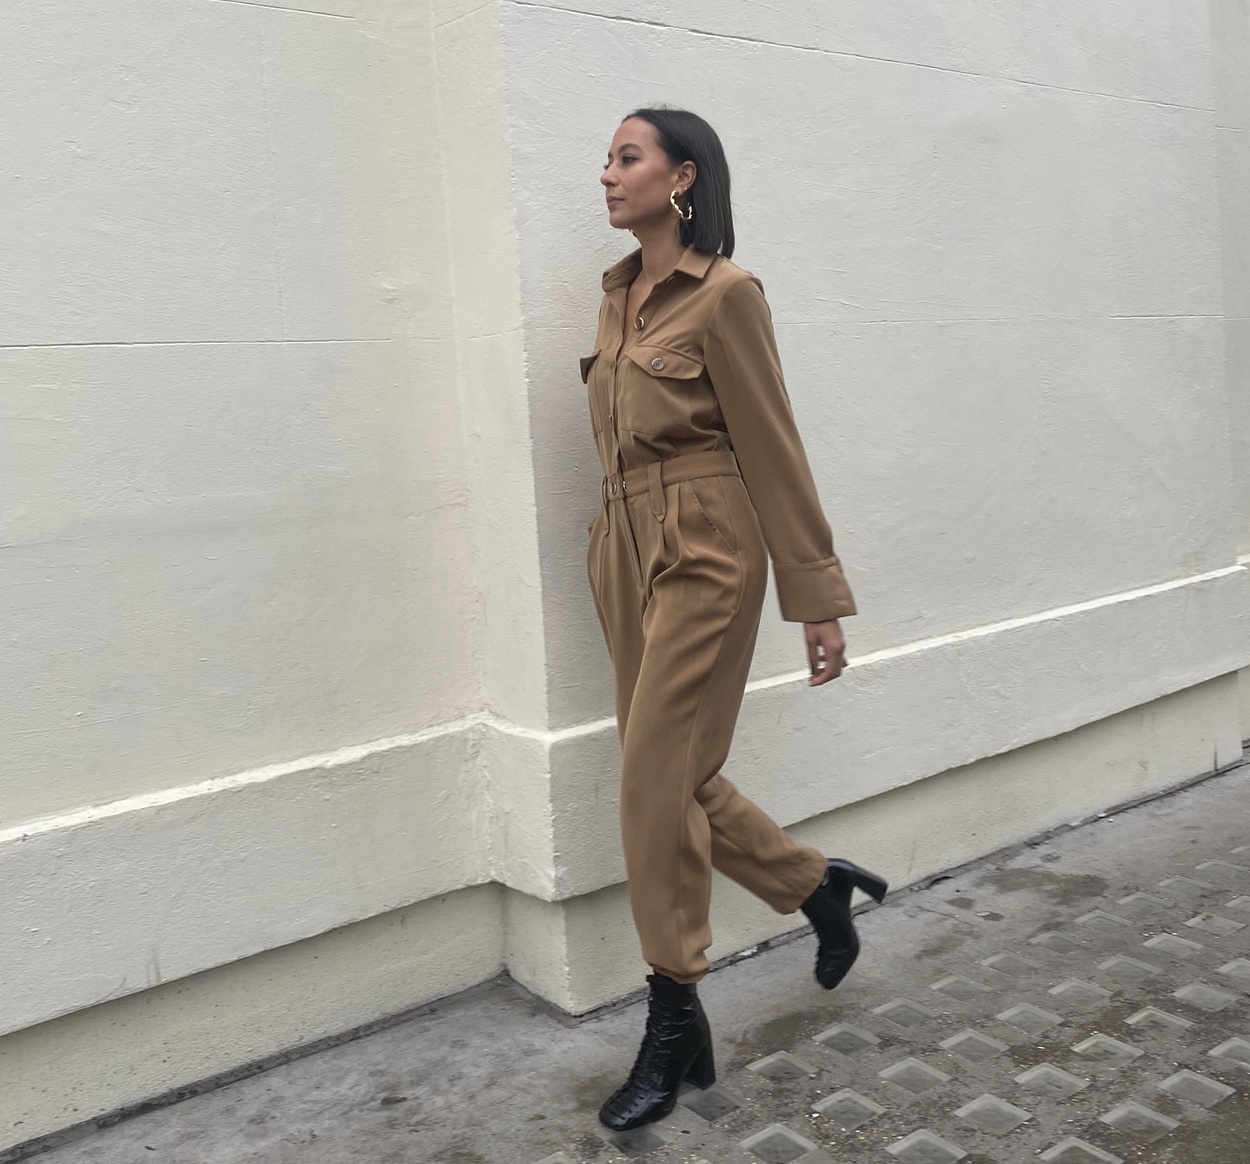 Canyon Jumpsuit - Beige by Jessica K on curated-crowd.com